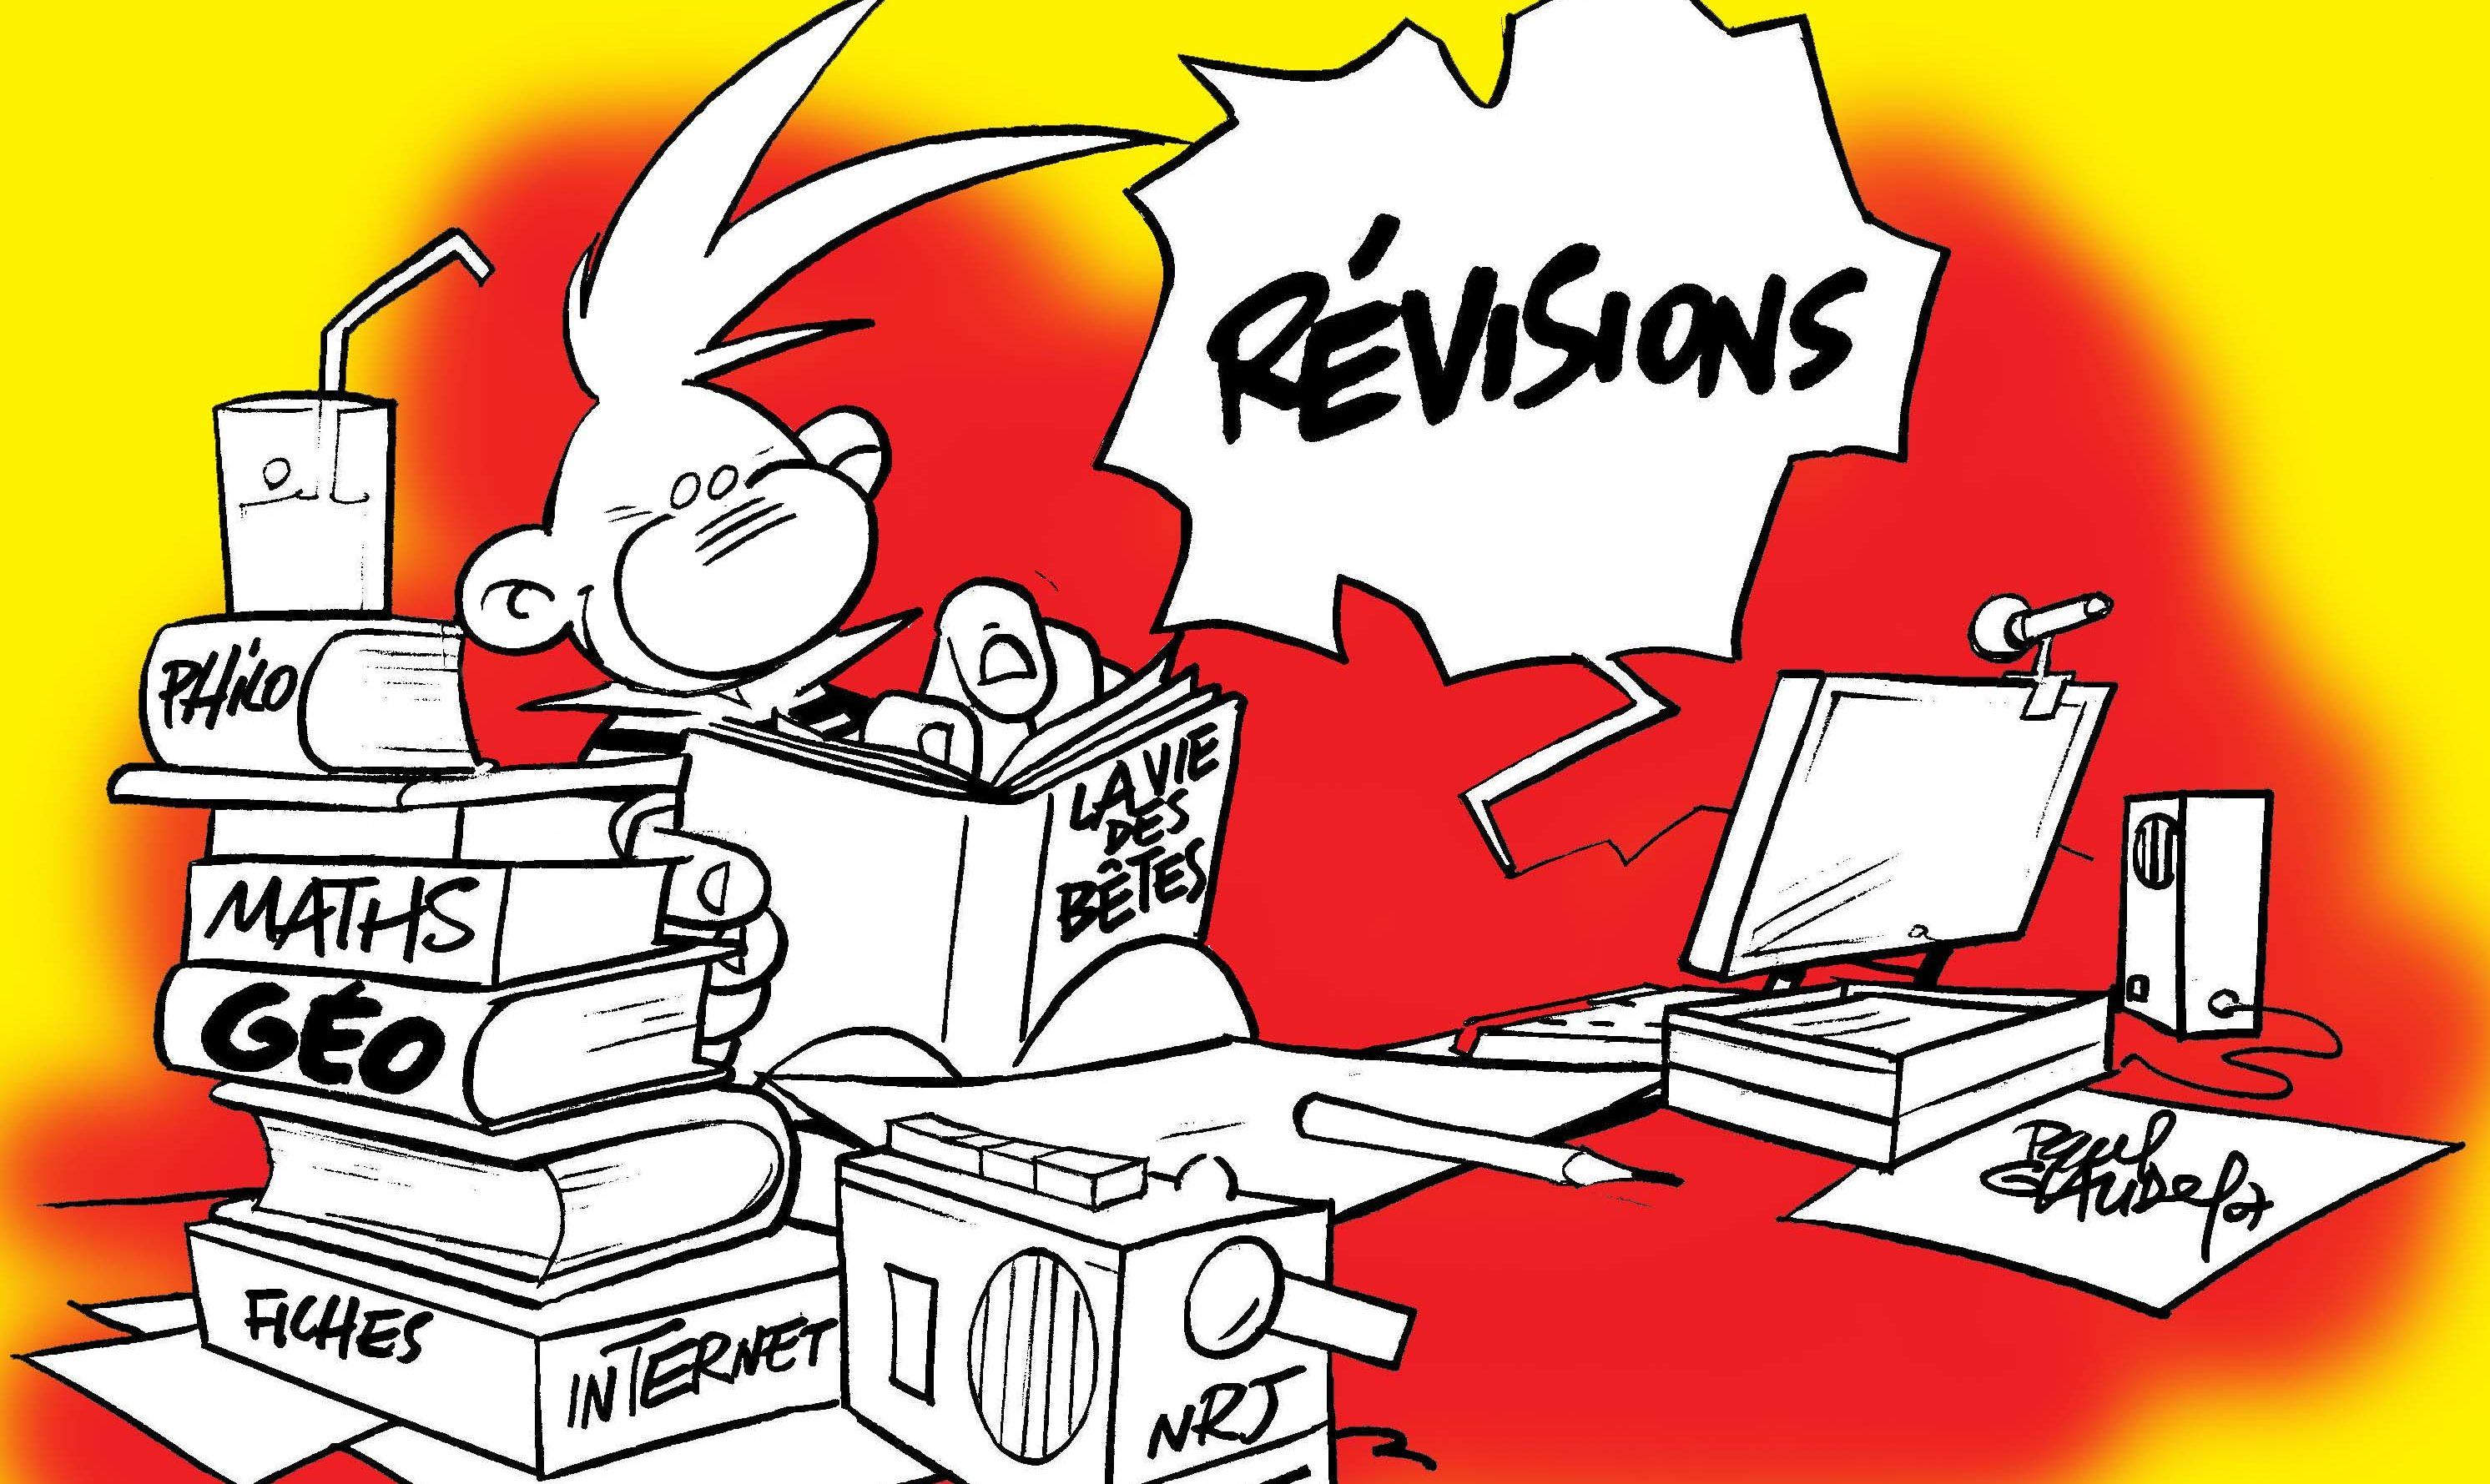 dessin-revisions-BB-rouge.jpg